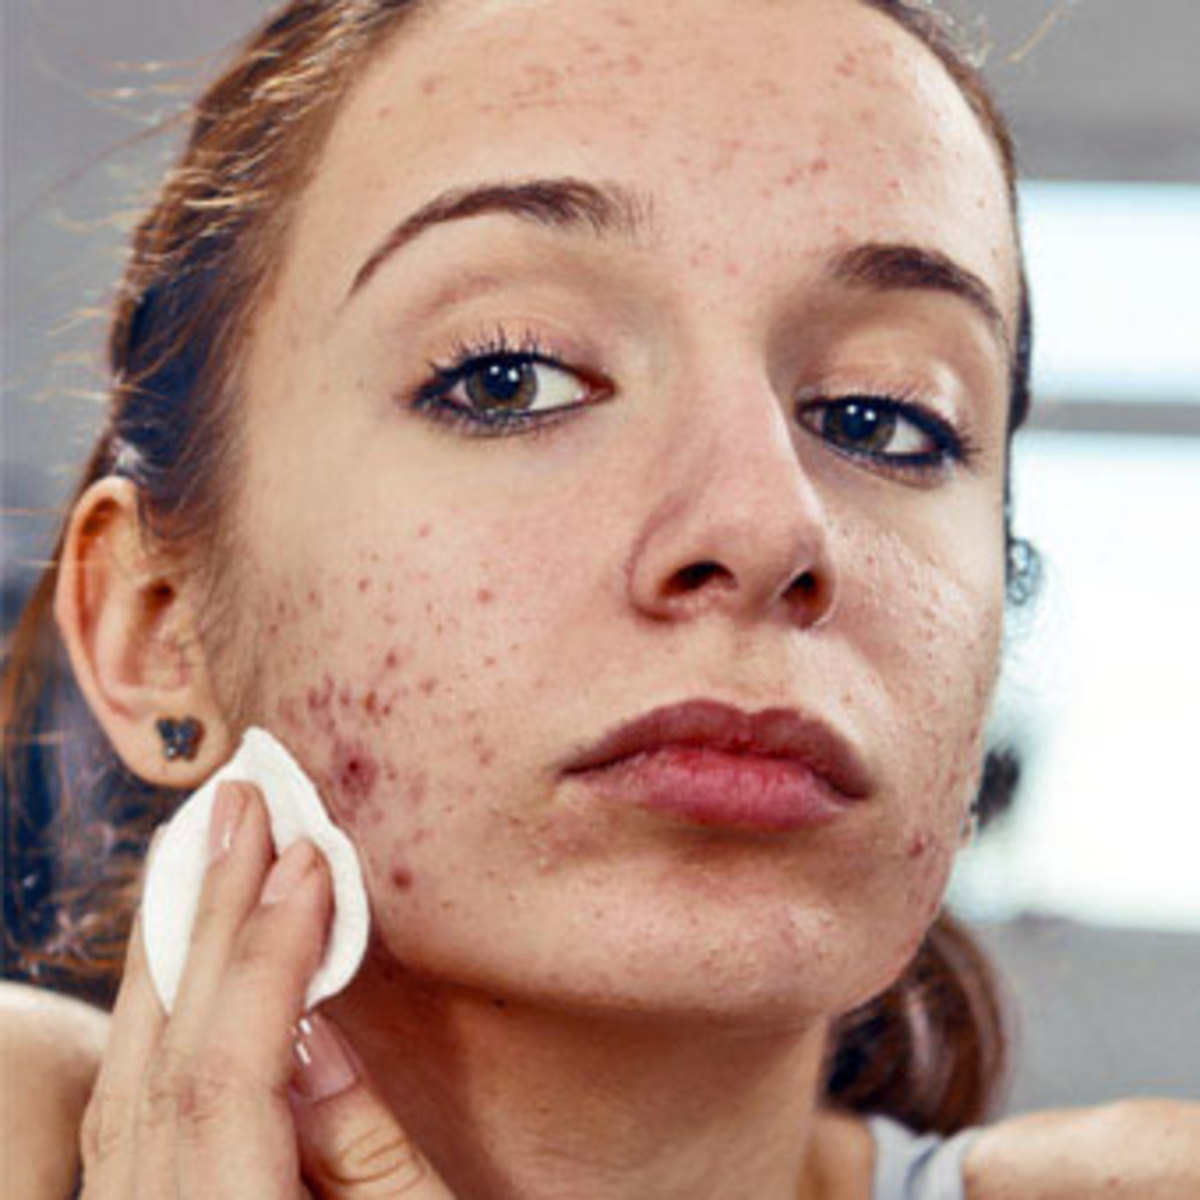 How To Treat Folliculitis Hubpages